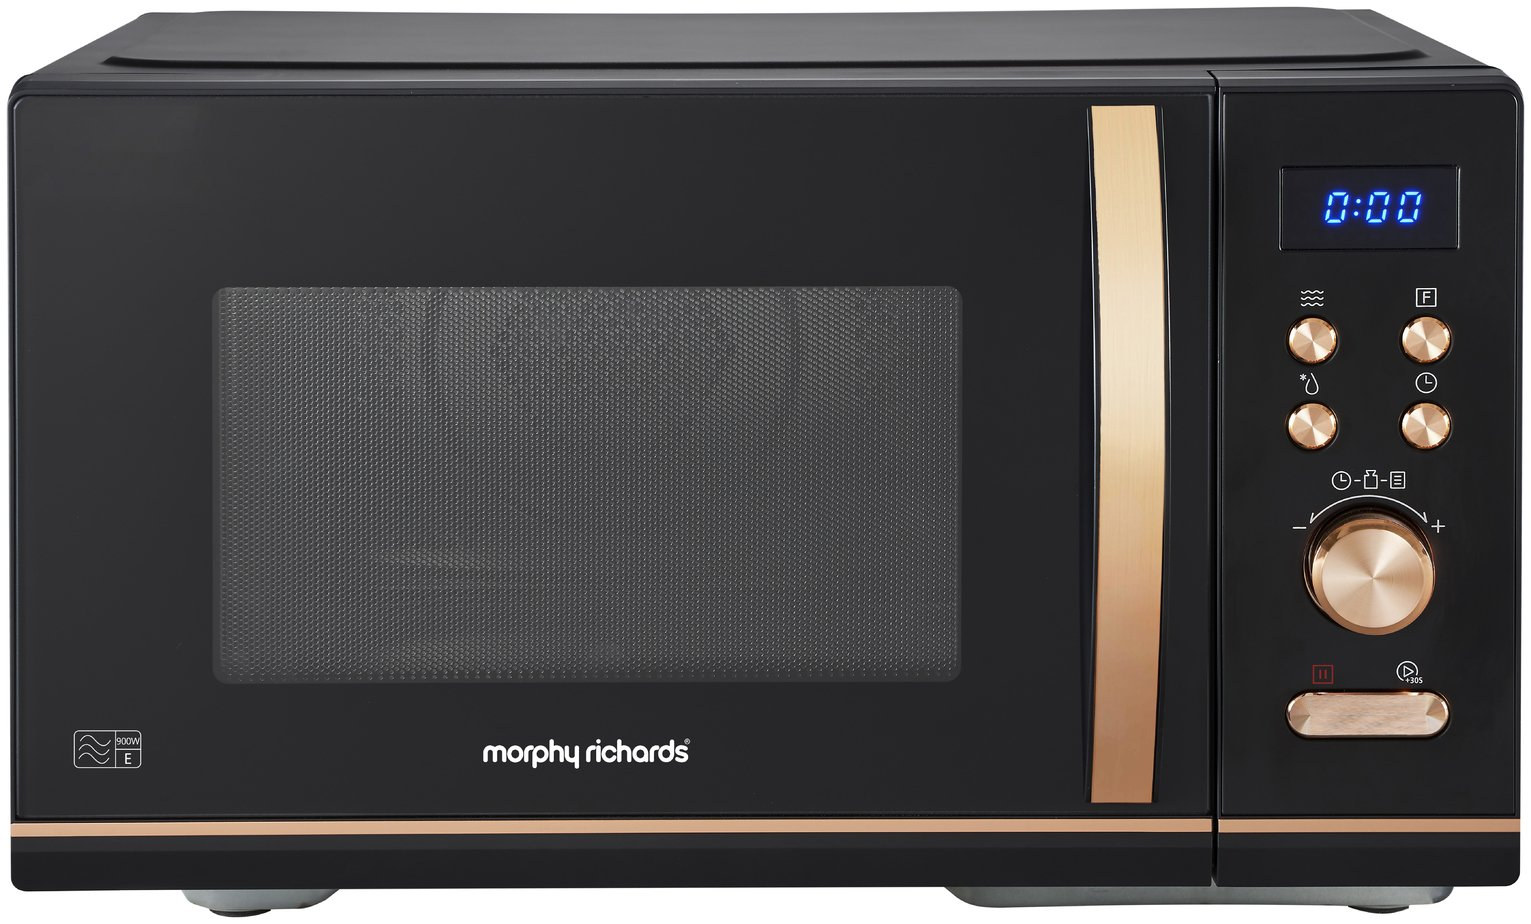 Morphy Richards 900W Combination Microwave - Rose Gold